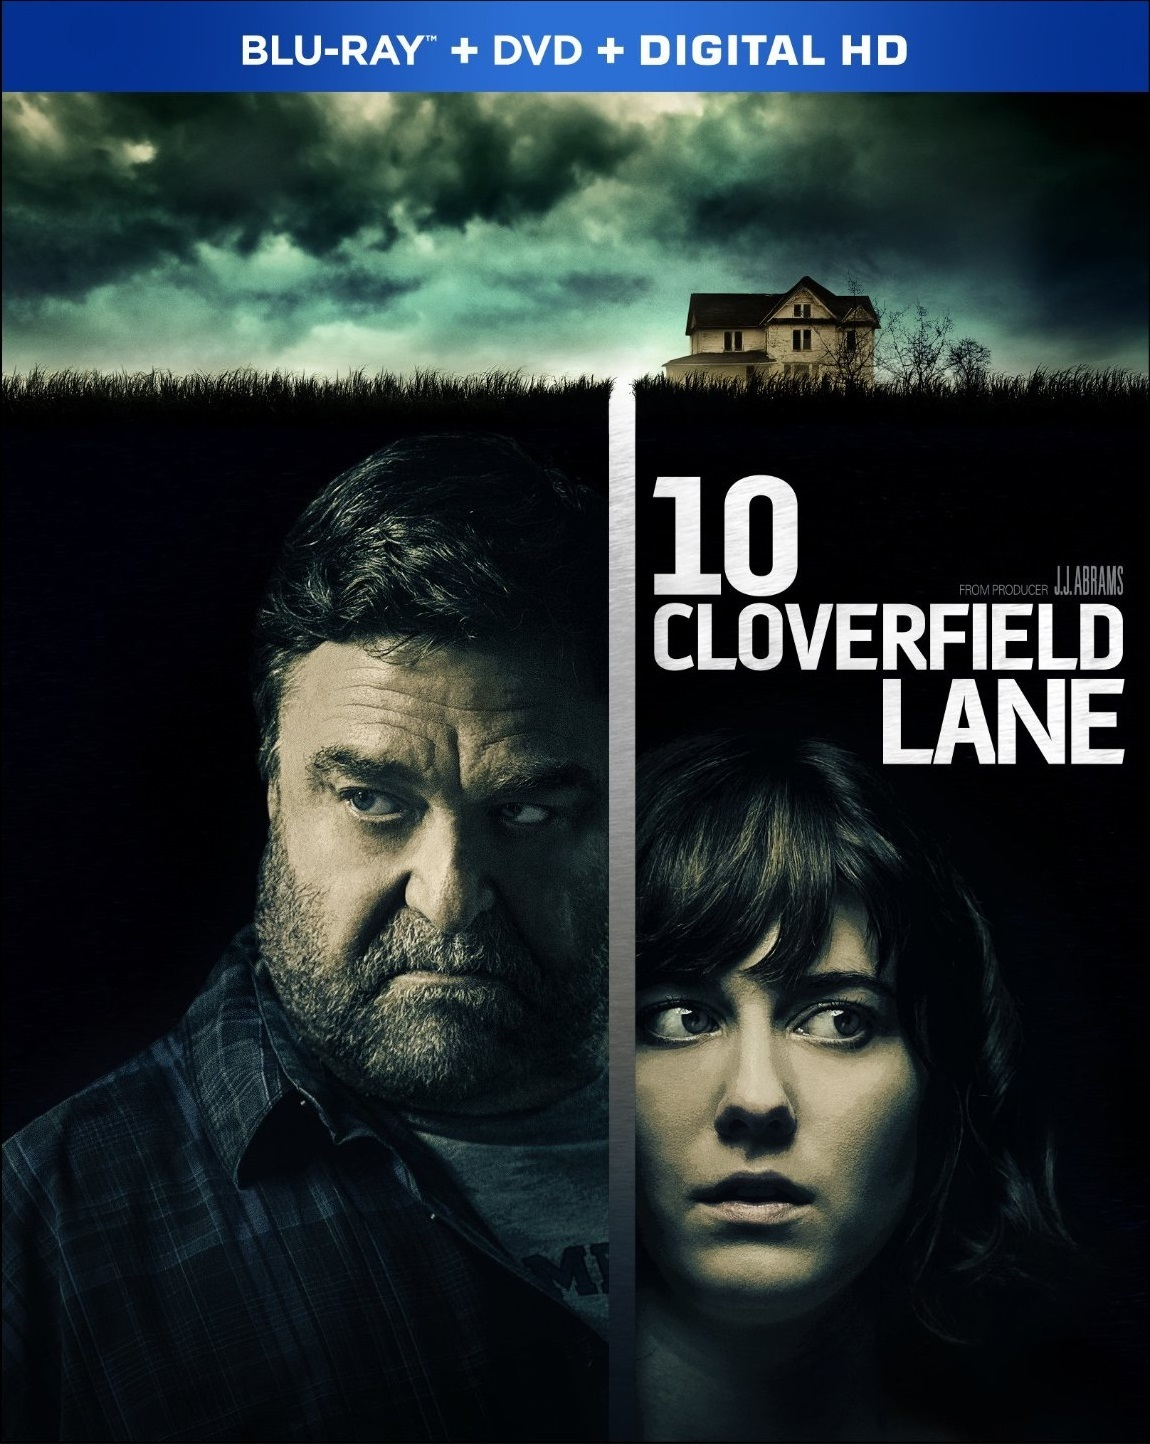 10 Cloverfield Lane (2016) poster image